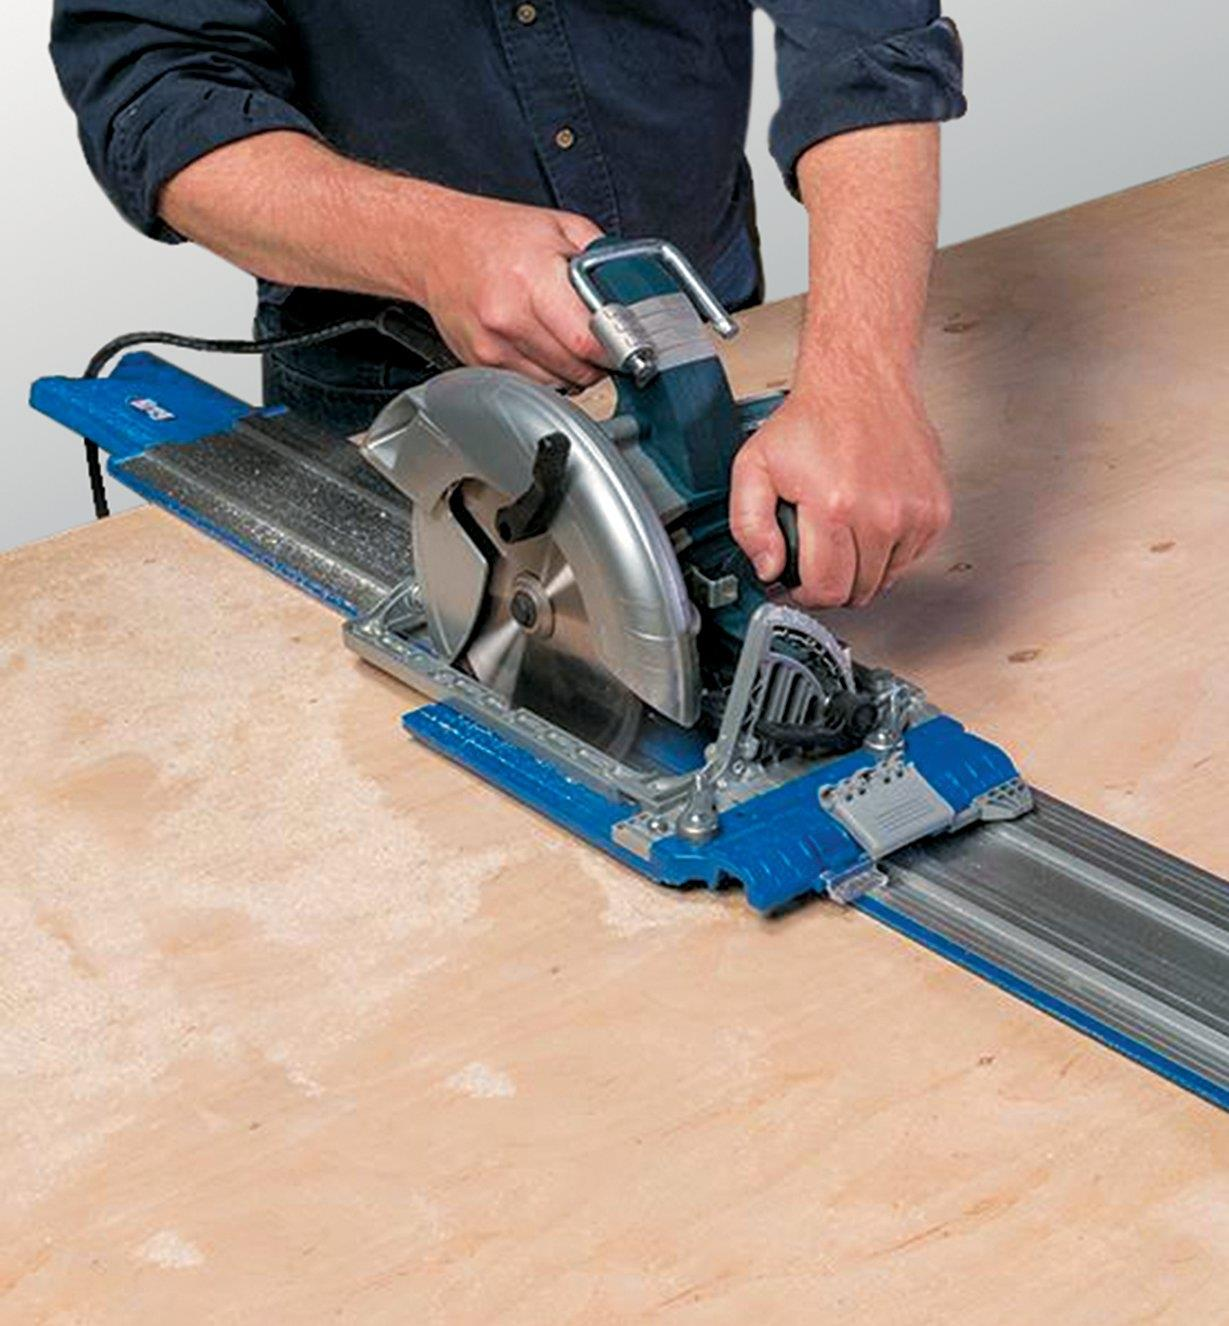 Cutting a panel with a circular saw using the saw guide